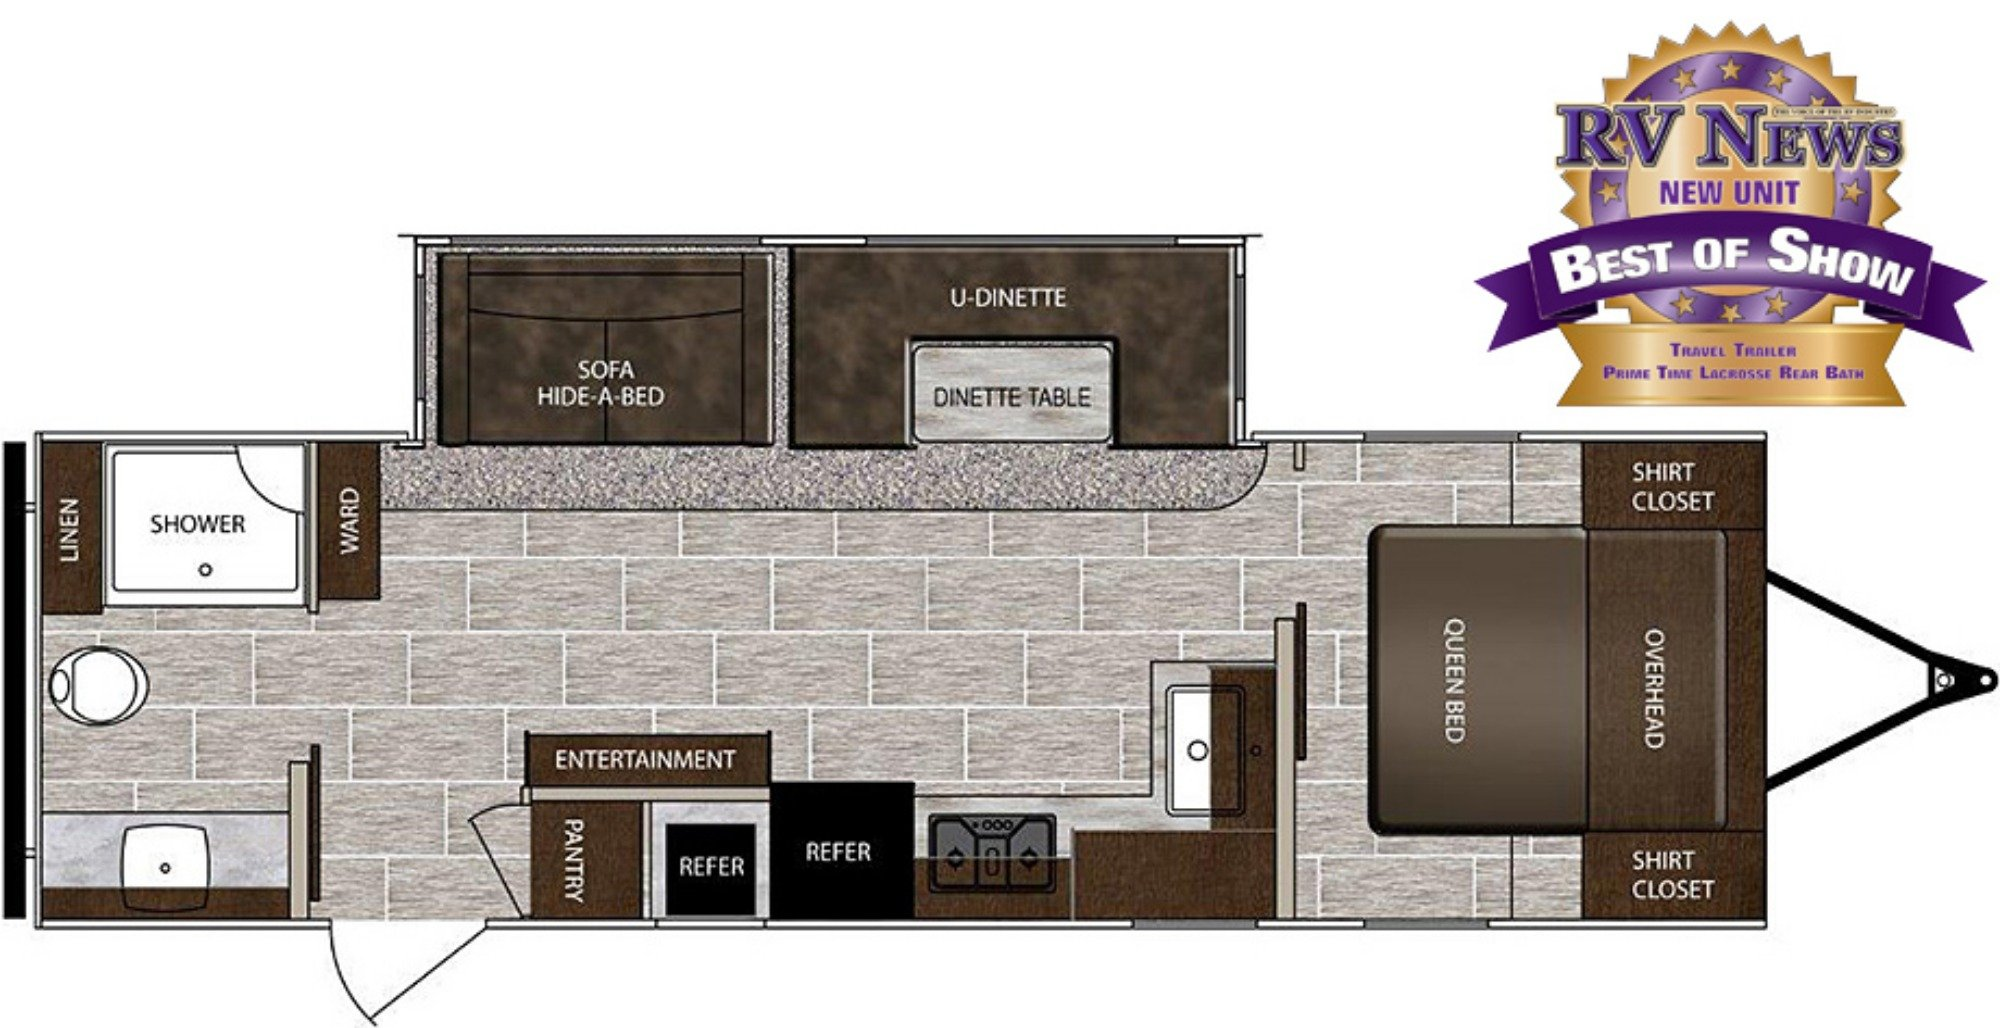 View Floor Plan for 2019 PRIME TIME LACROSSE 2911RB